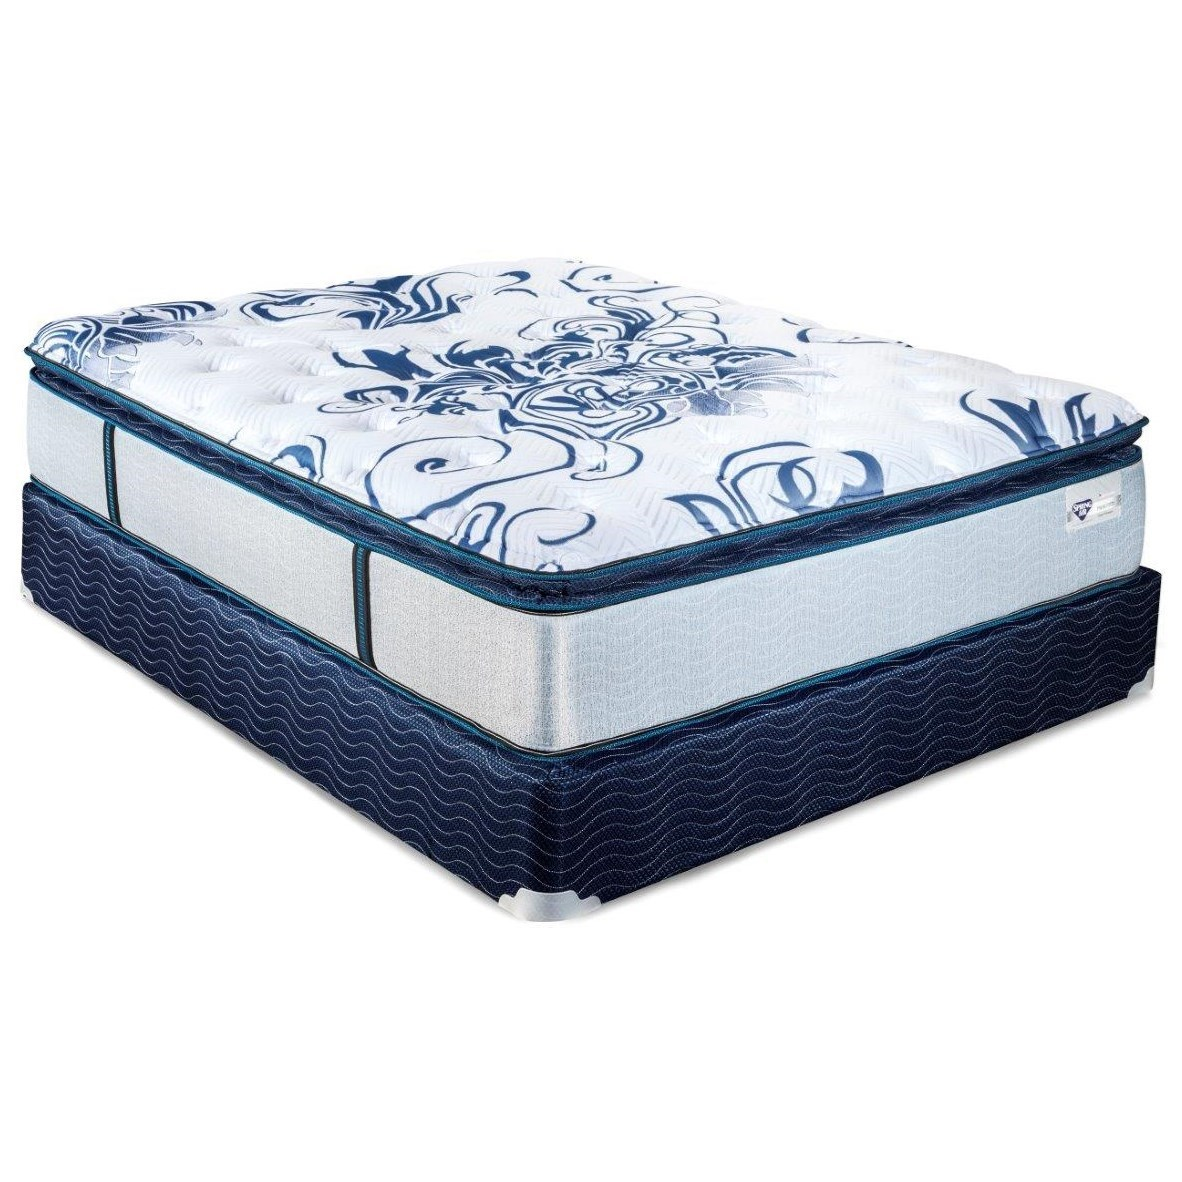 Twin XL Pocketed Coil Mattress Set